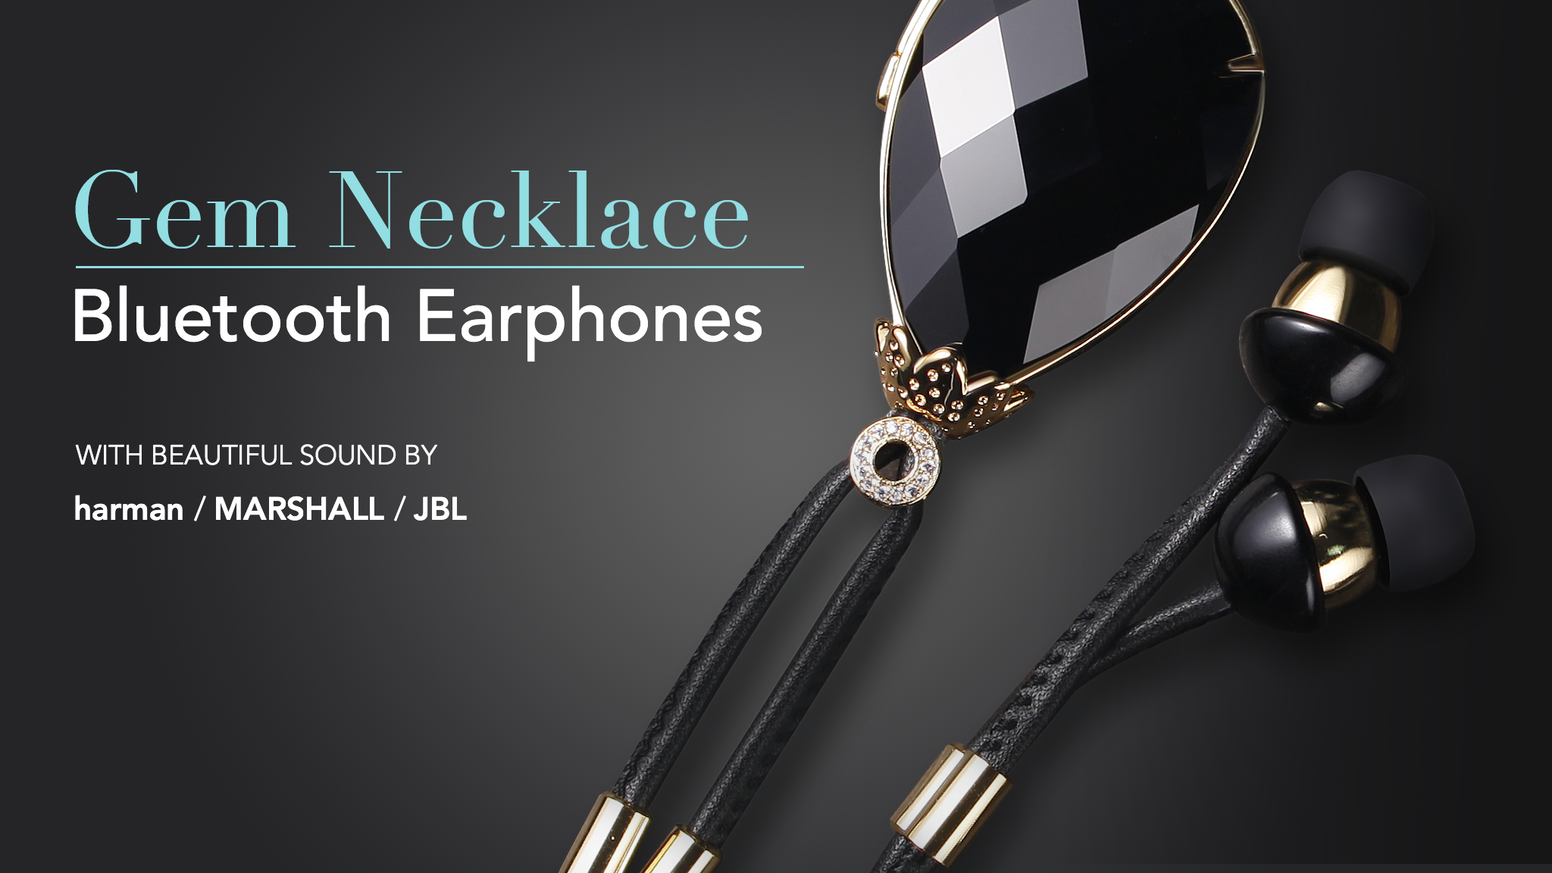 HiNICE+ is a unique gem necklace with Bluetooth Earphones. Audiophile Hi-Fi Sound. Various Valuable Gems. 24K Gold Plating. For you.